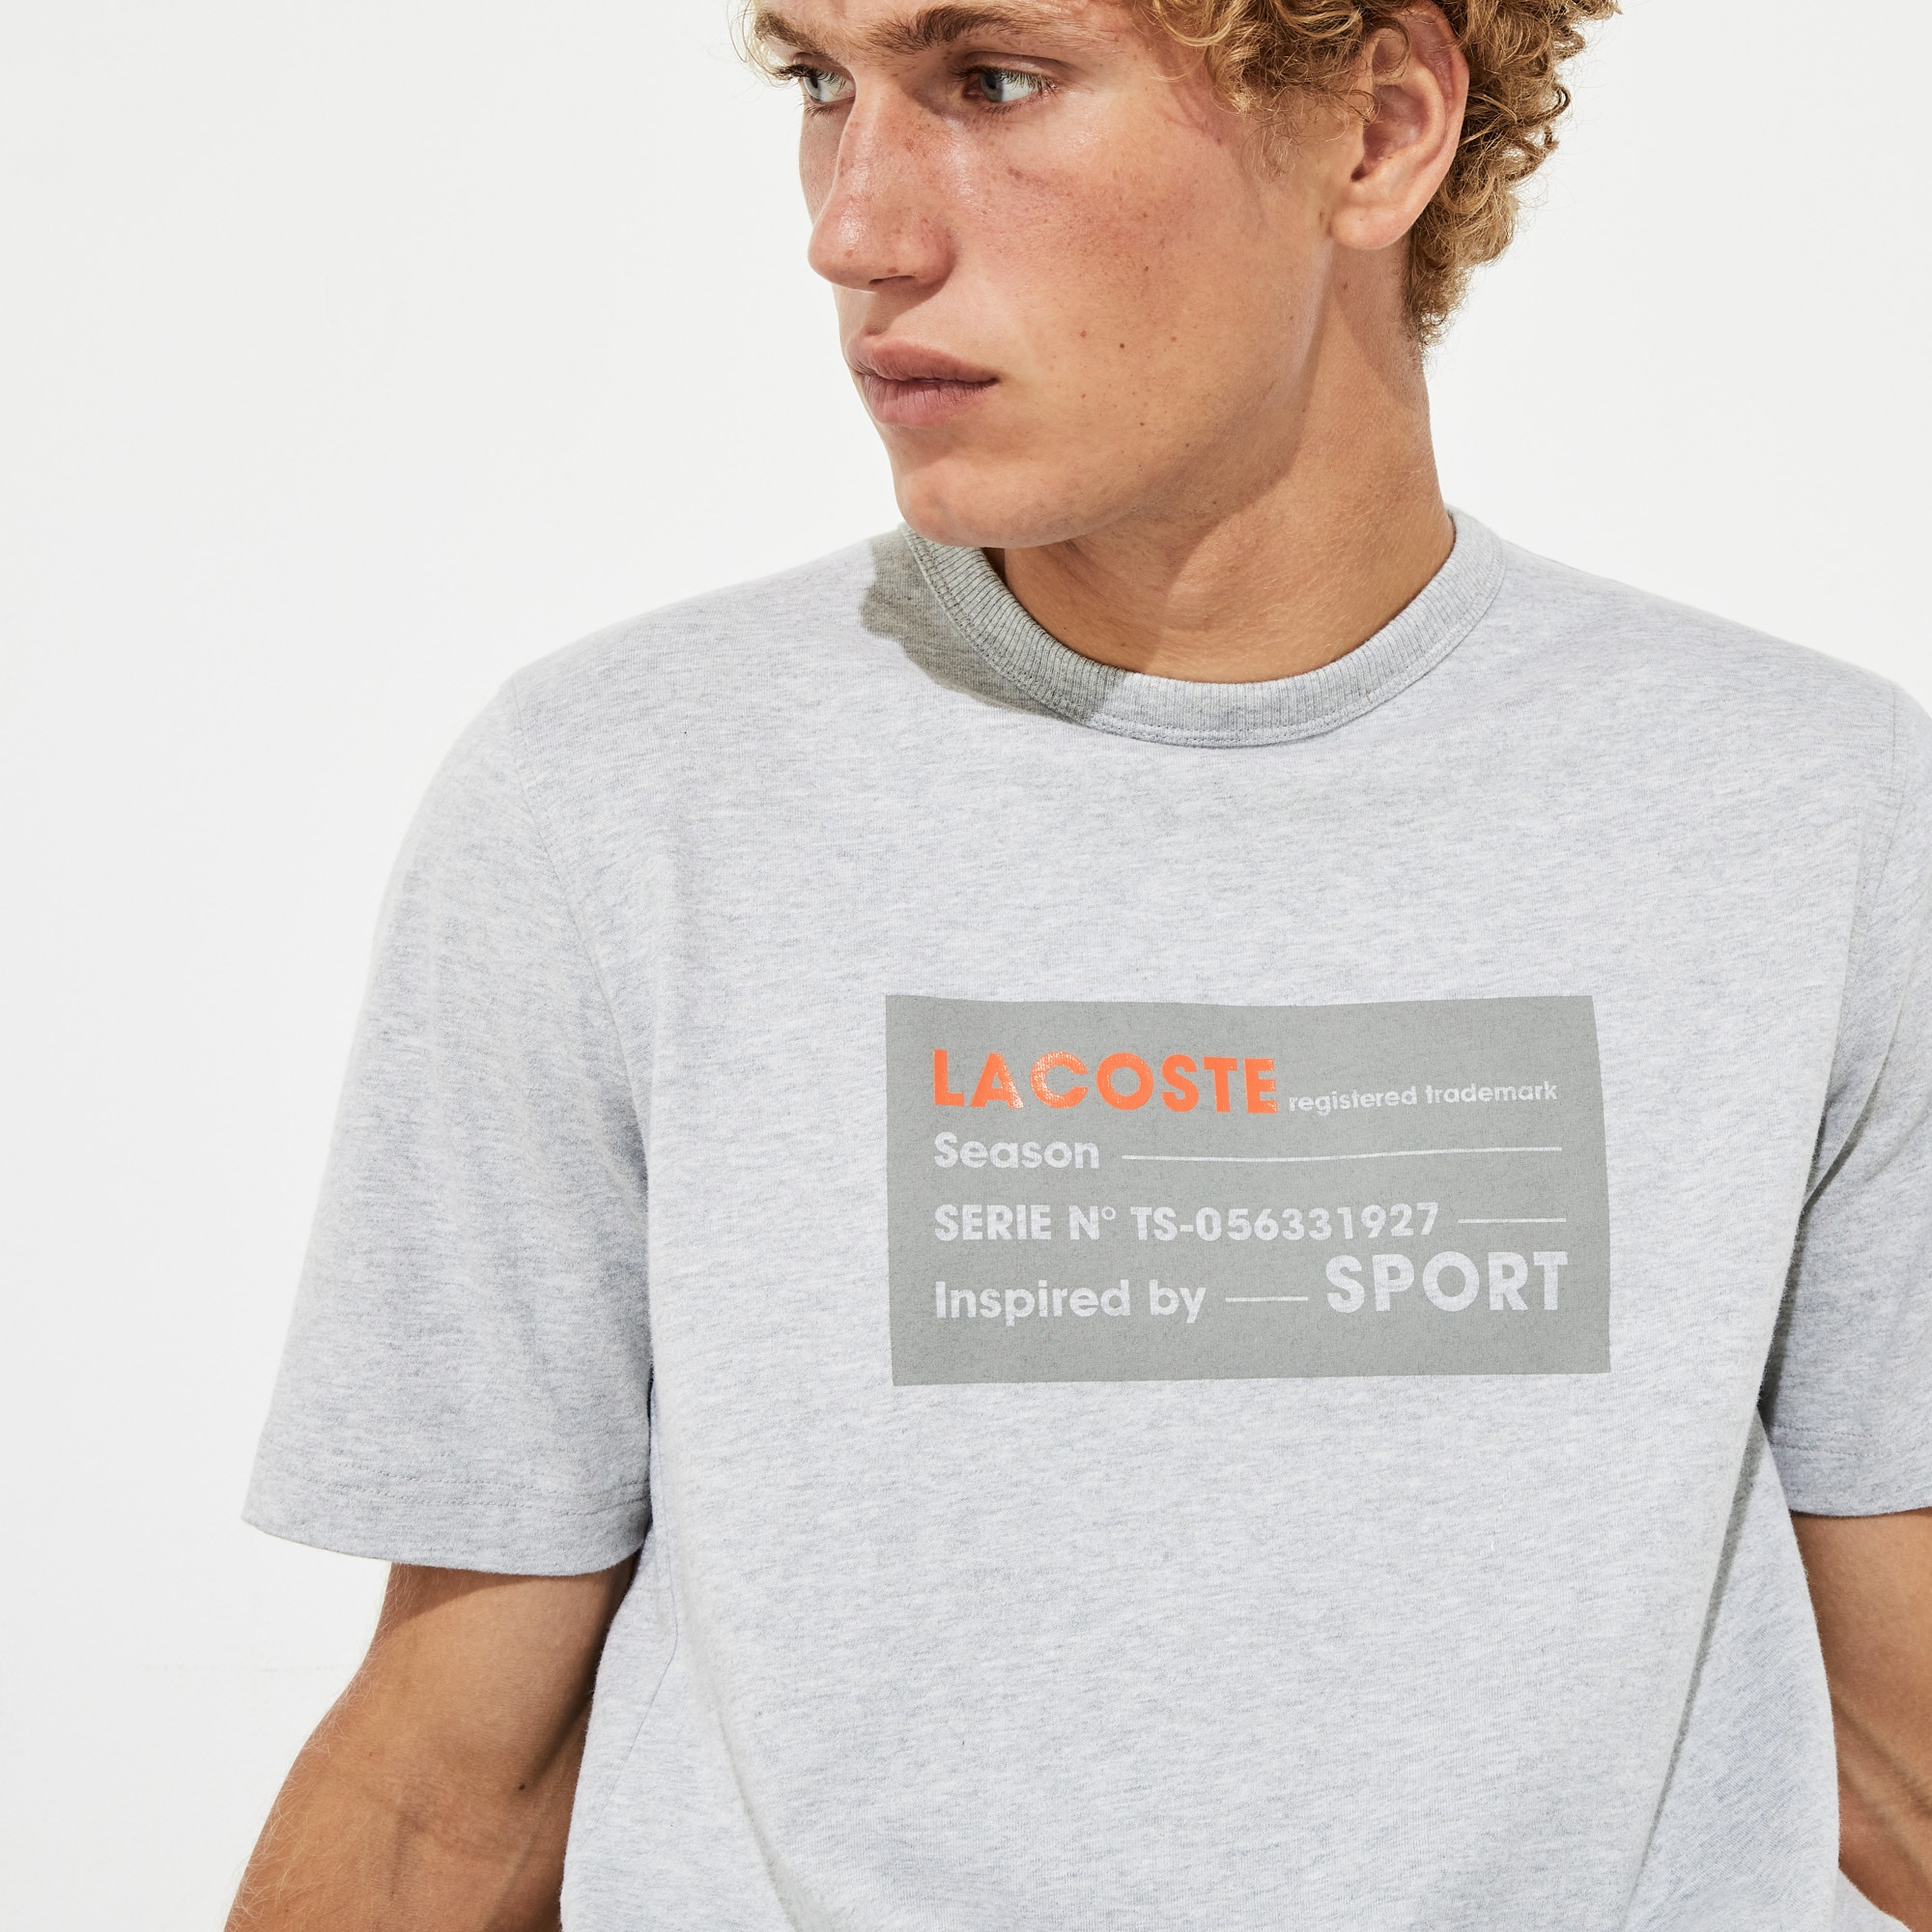 Men's Lacoste SPORT 3D Print Cotton T-shirt